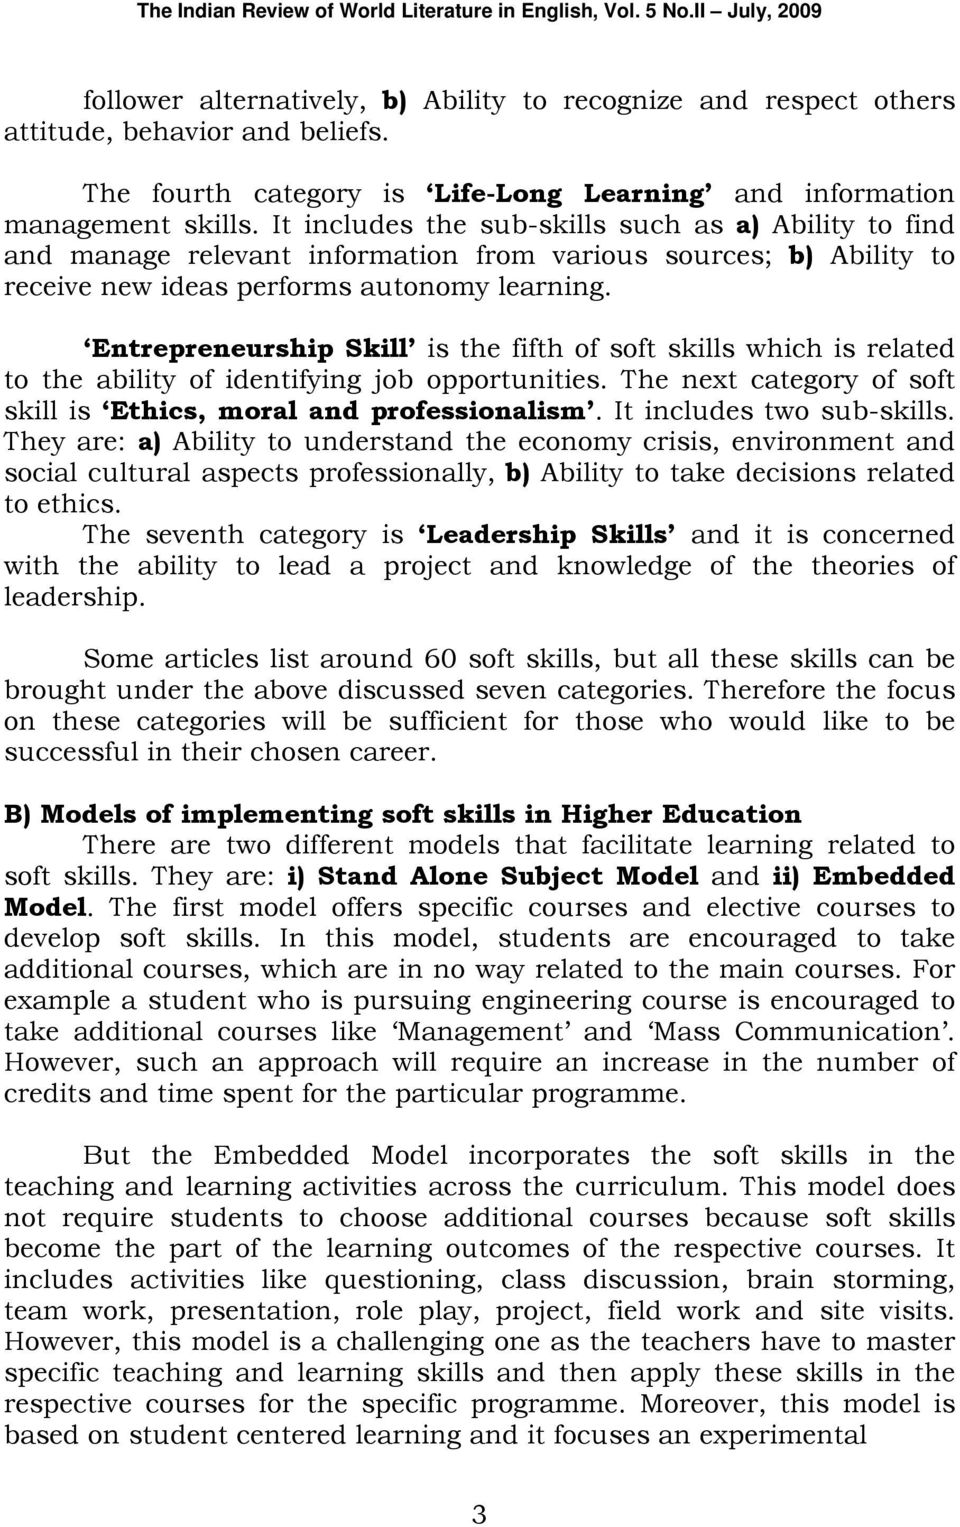 Entrepreneurship Skill is the fifth of soft skills which is related to the ability of identifying job opportunities. The next category of soft skill is Ethics, moral and professionalism.